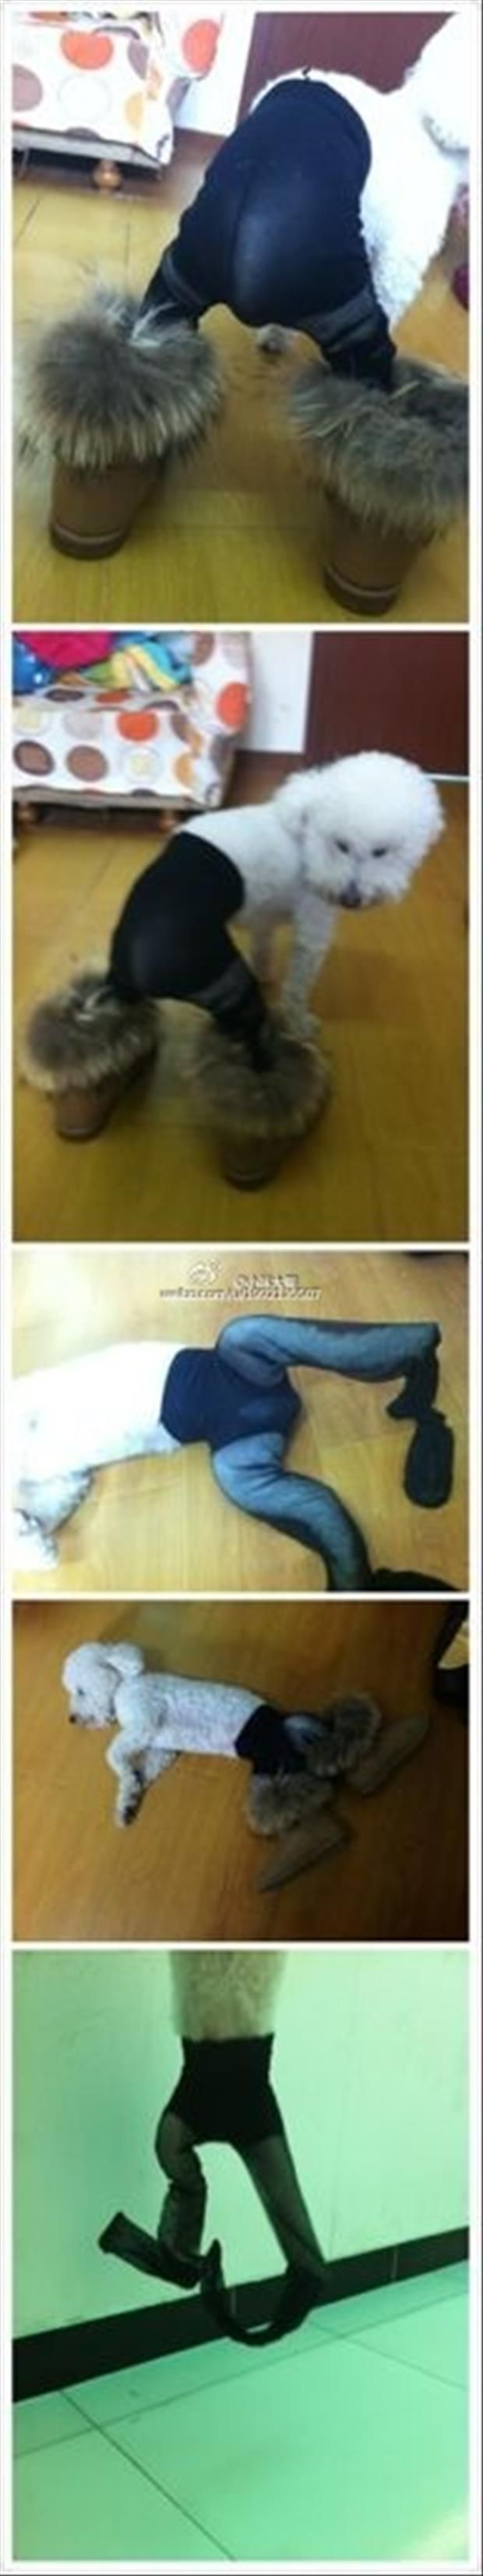 dogs wearing pantyhose meme (8)